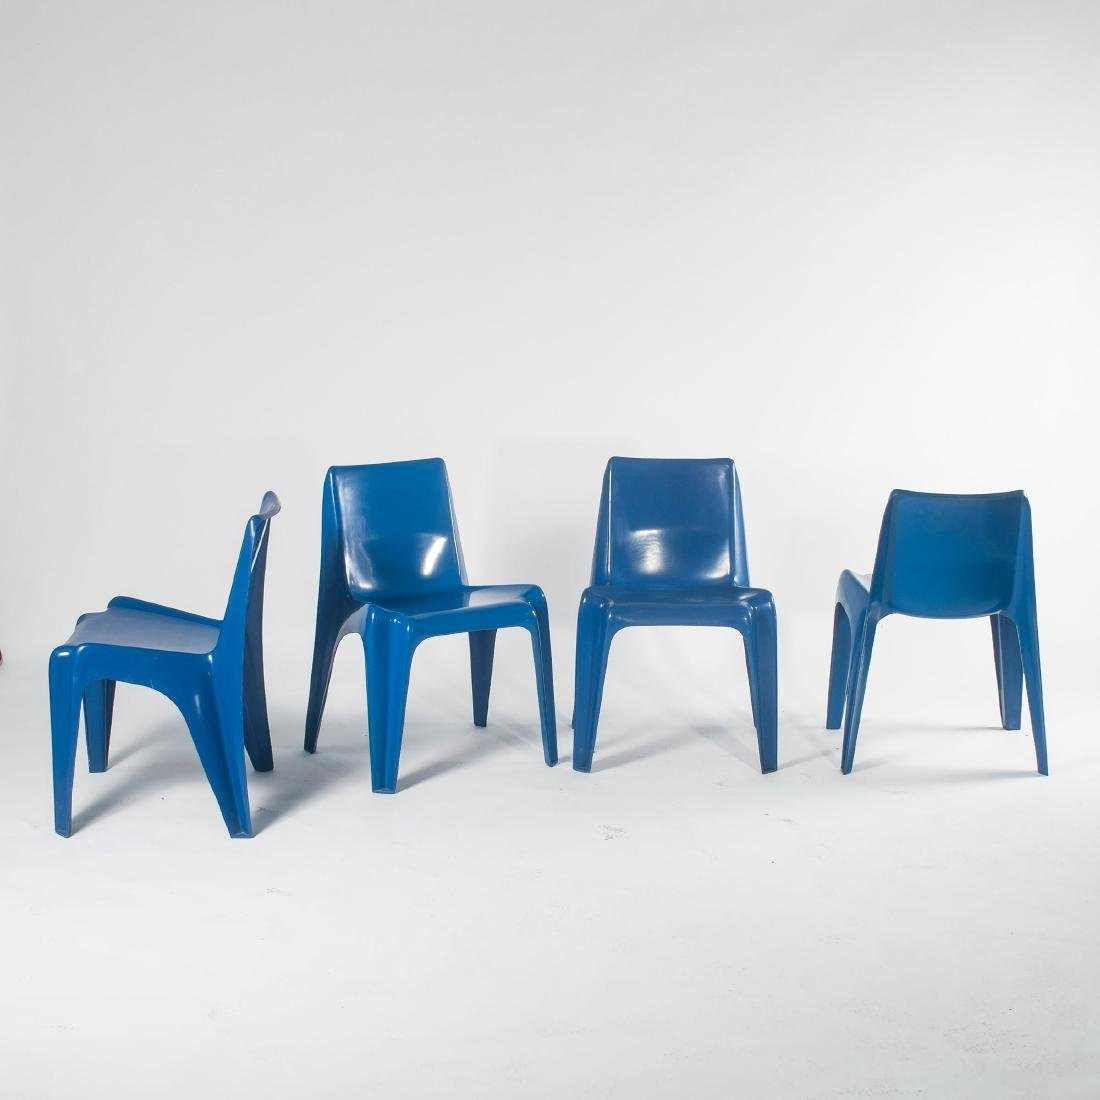 Four 'BA 1171' stacking chairs, 1964 - 4